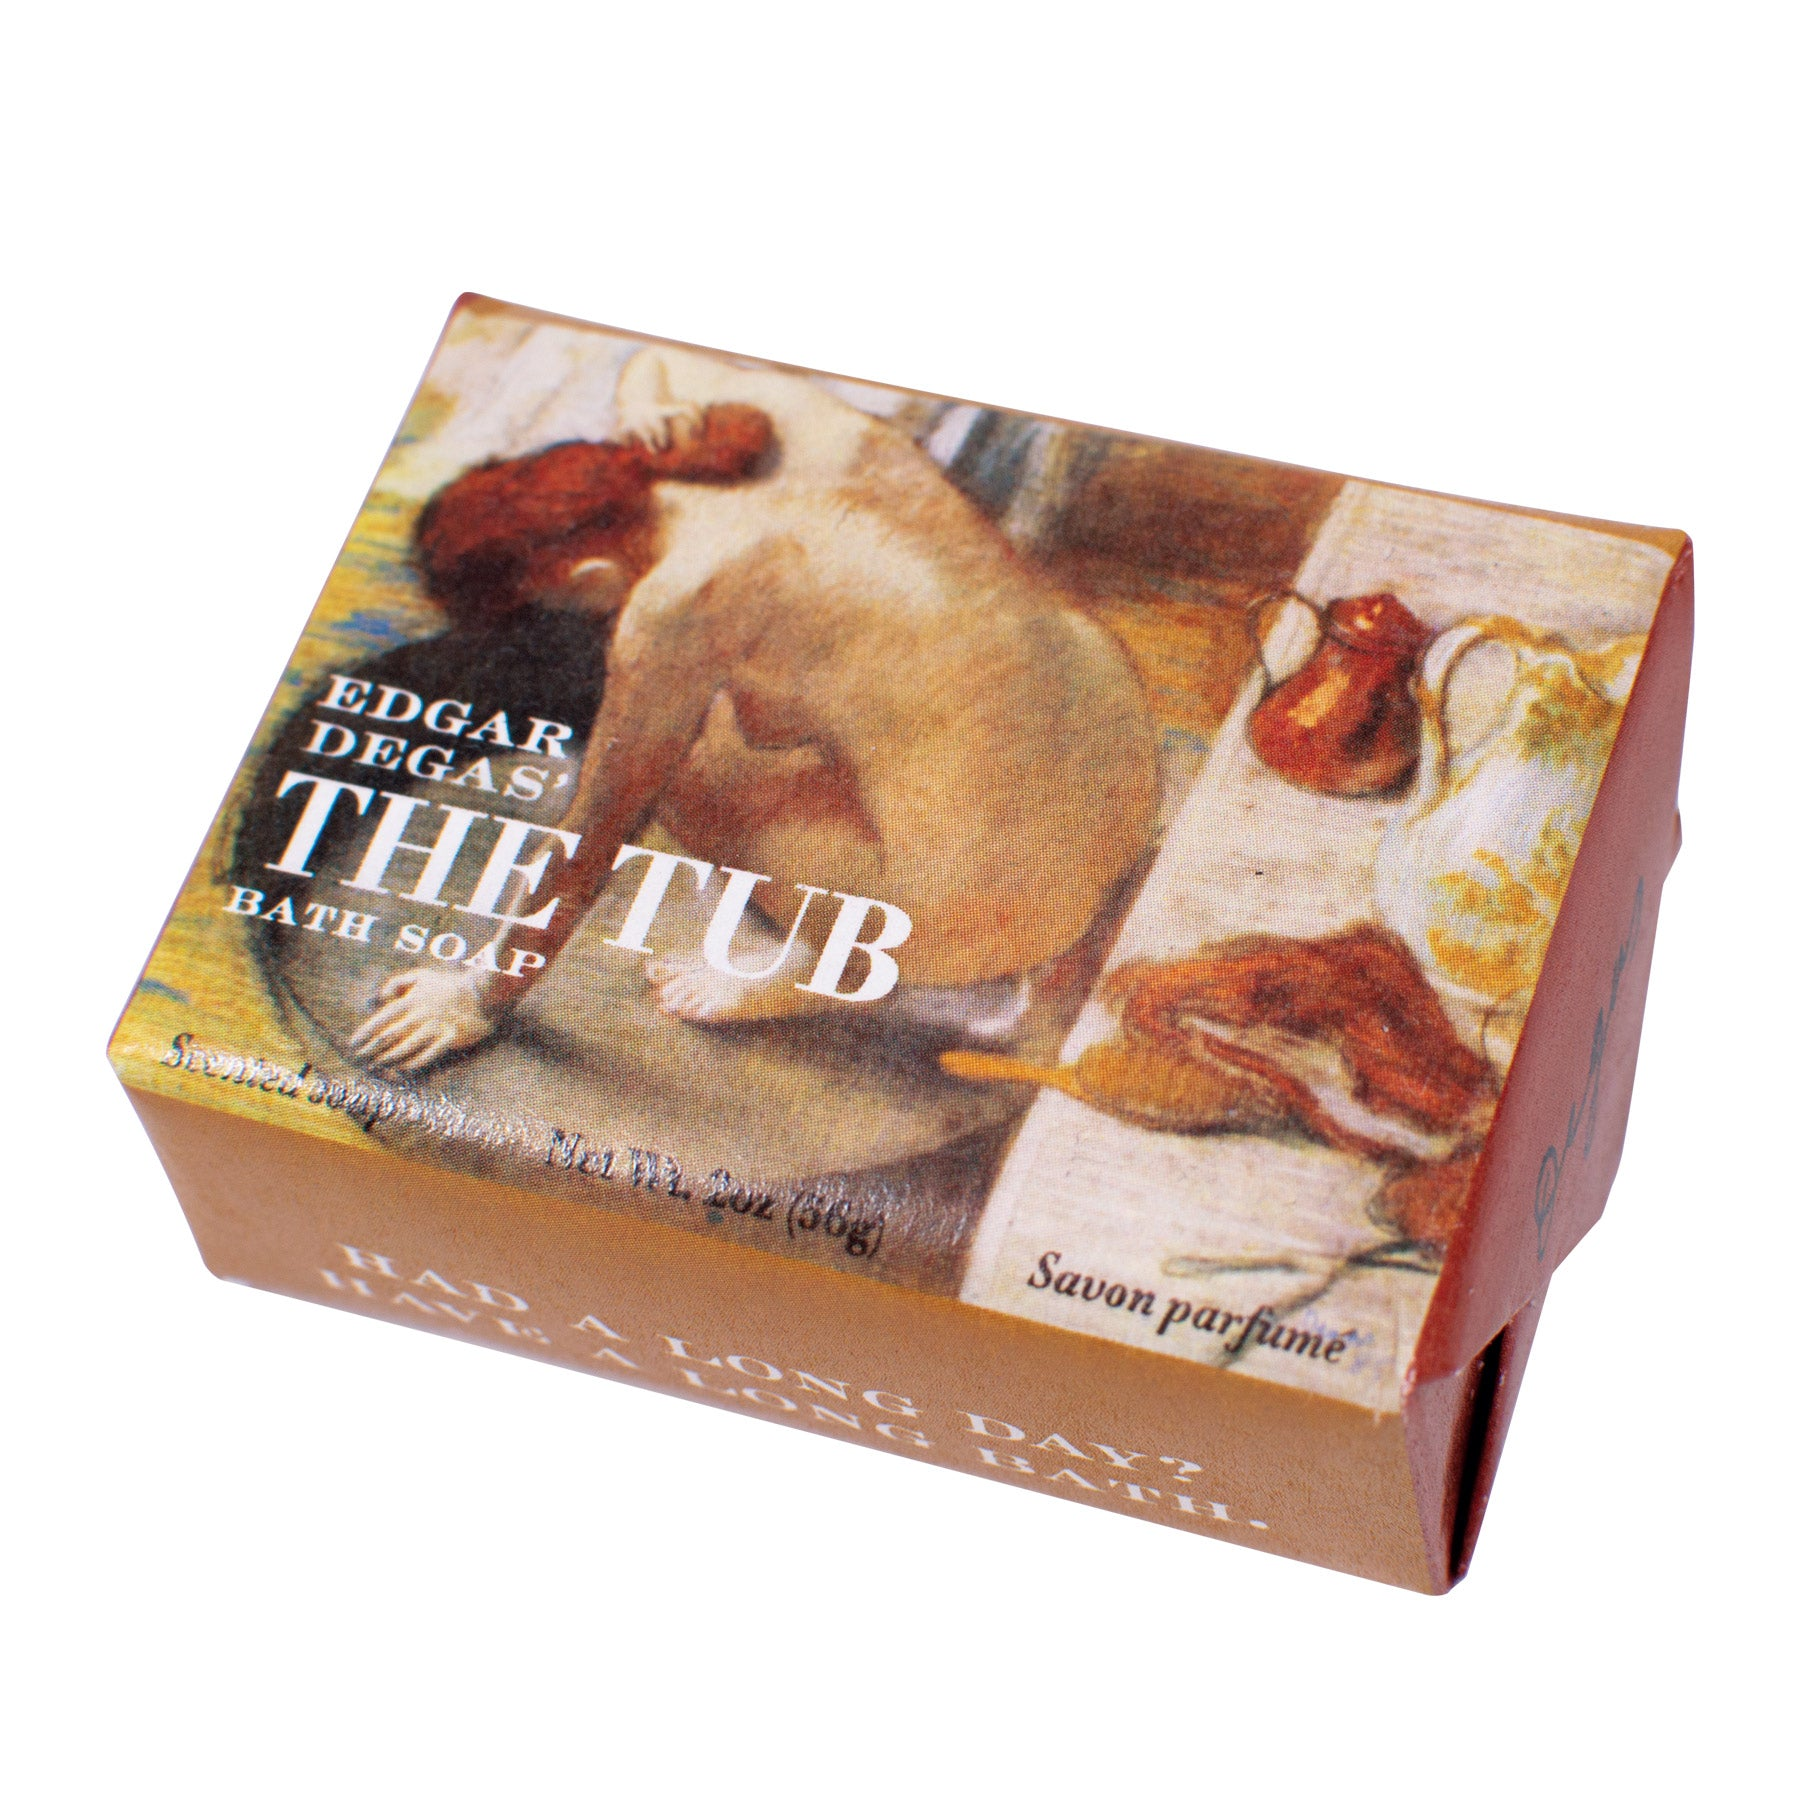 Edgar Degas' The Tub Bath Soap